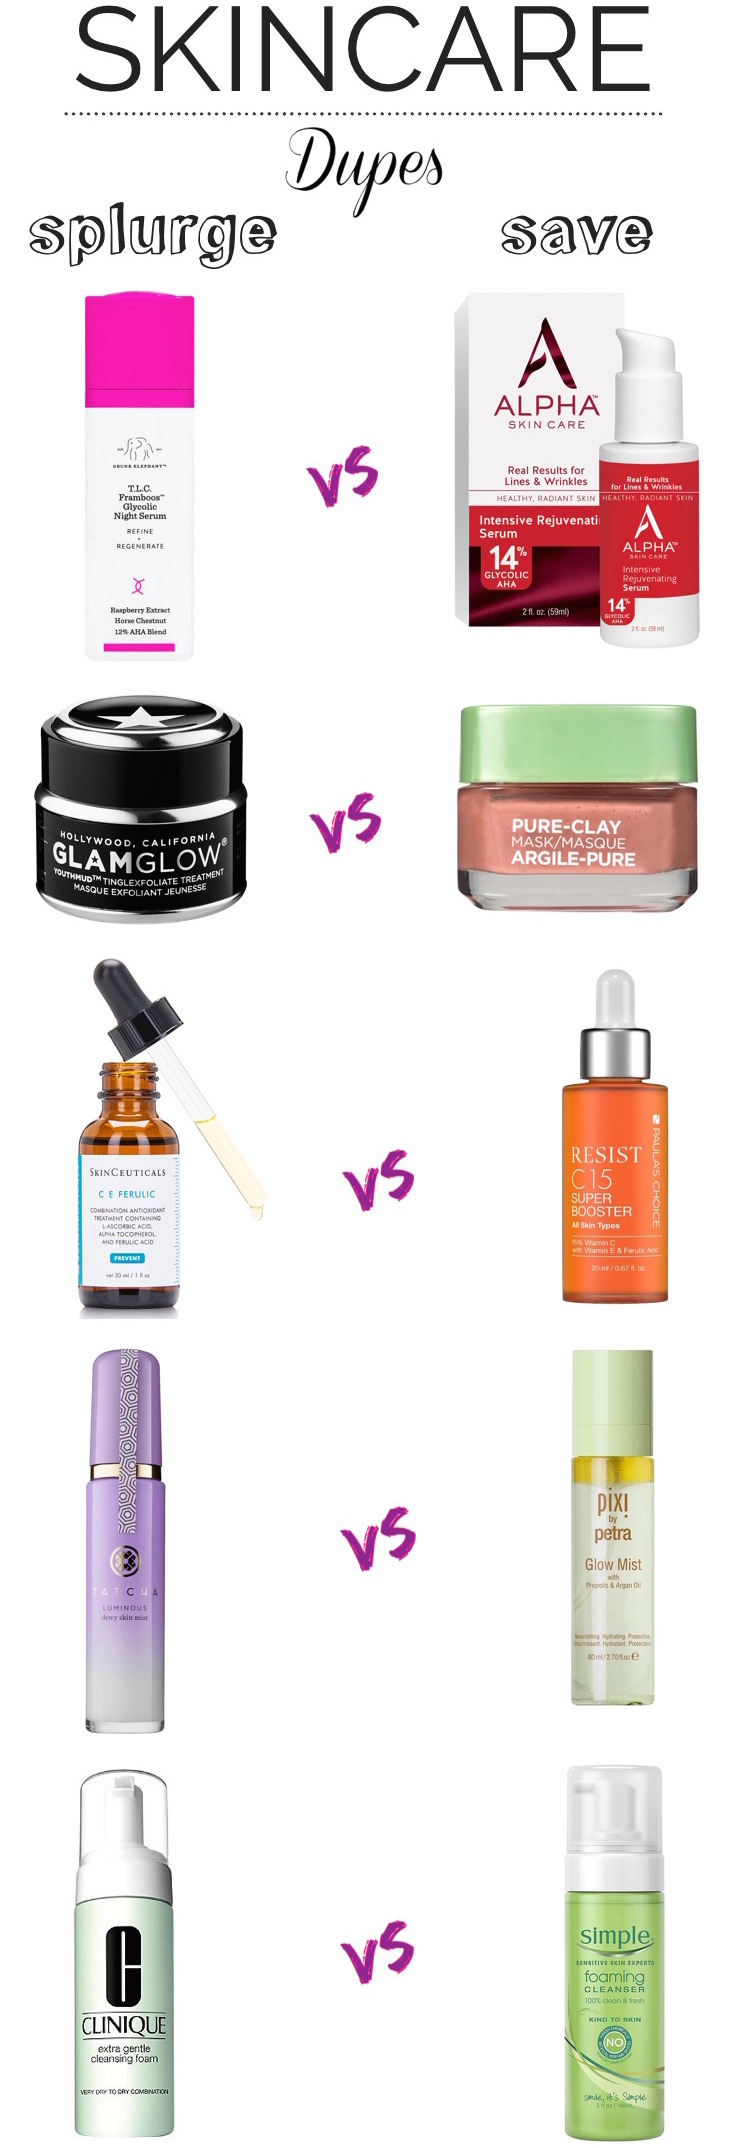 Don't want to drop $  110 on a night cream or serum? You don't have to! Here are 10 affordable alternatives for high-end skincare products that work just as well as their pricey counterparts!